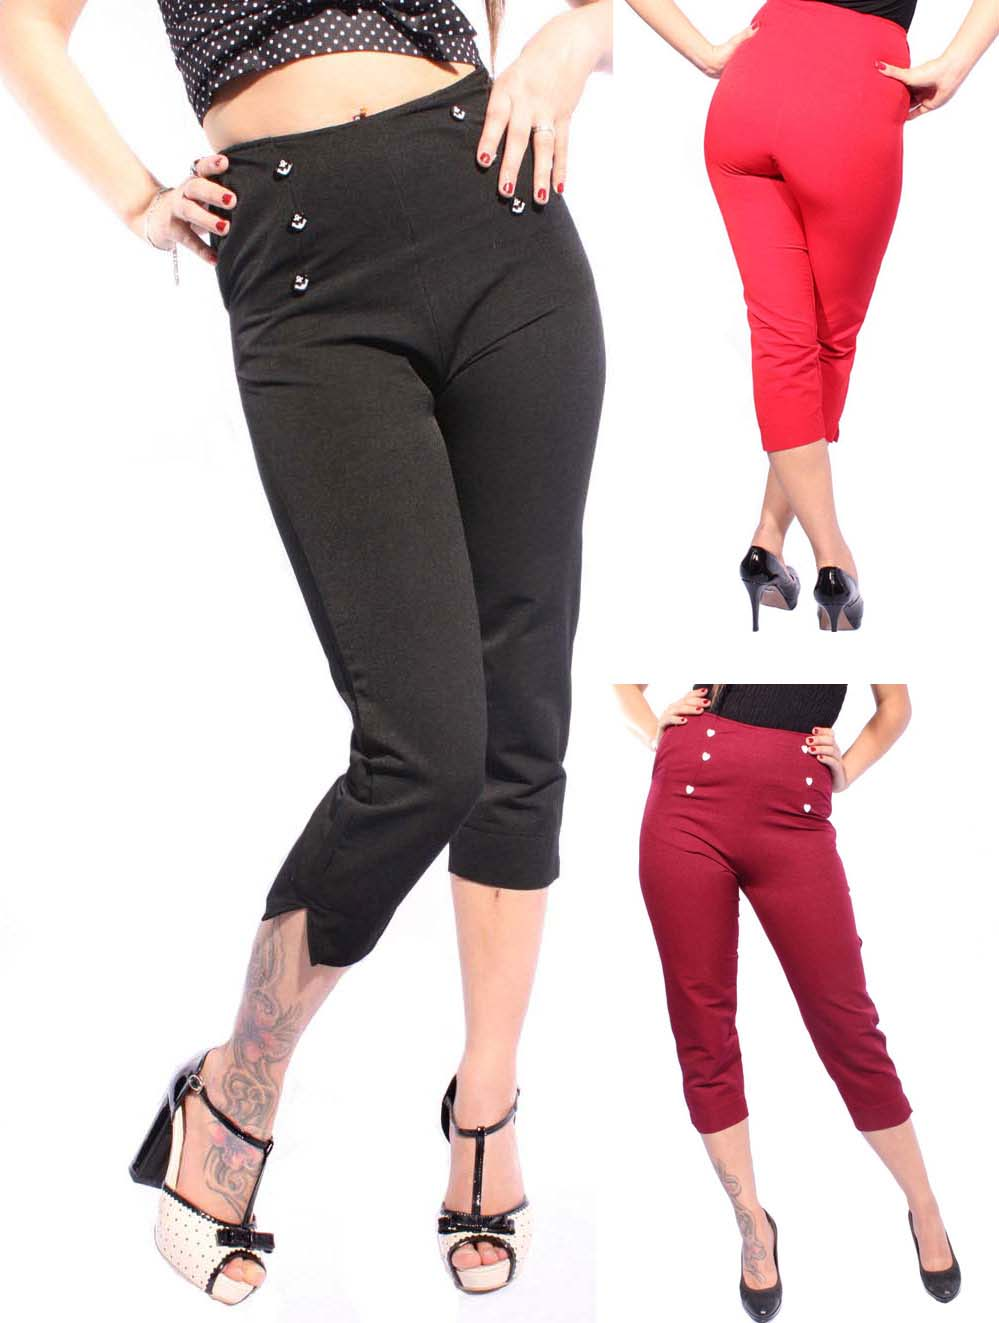 50er retro pin up rockabilly high waisted uniform caprihose capri hose ebay. Black Bedroom Furniture Sets. Home Design Ideas